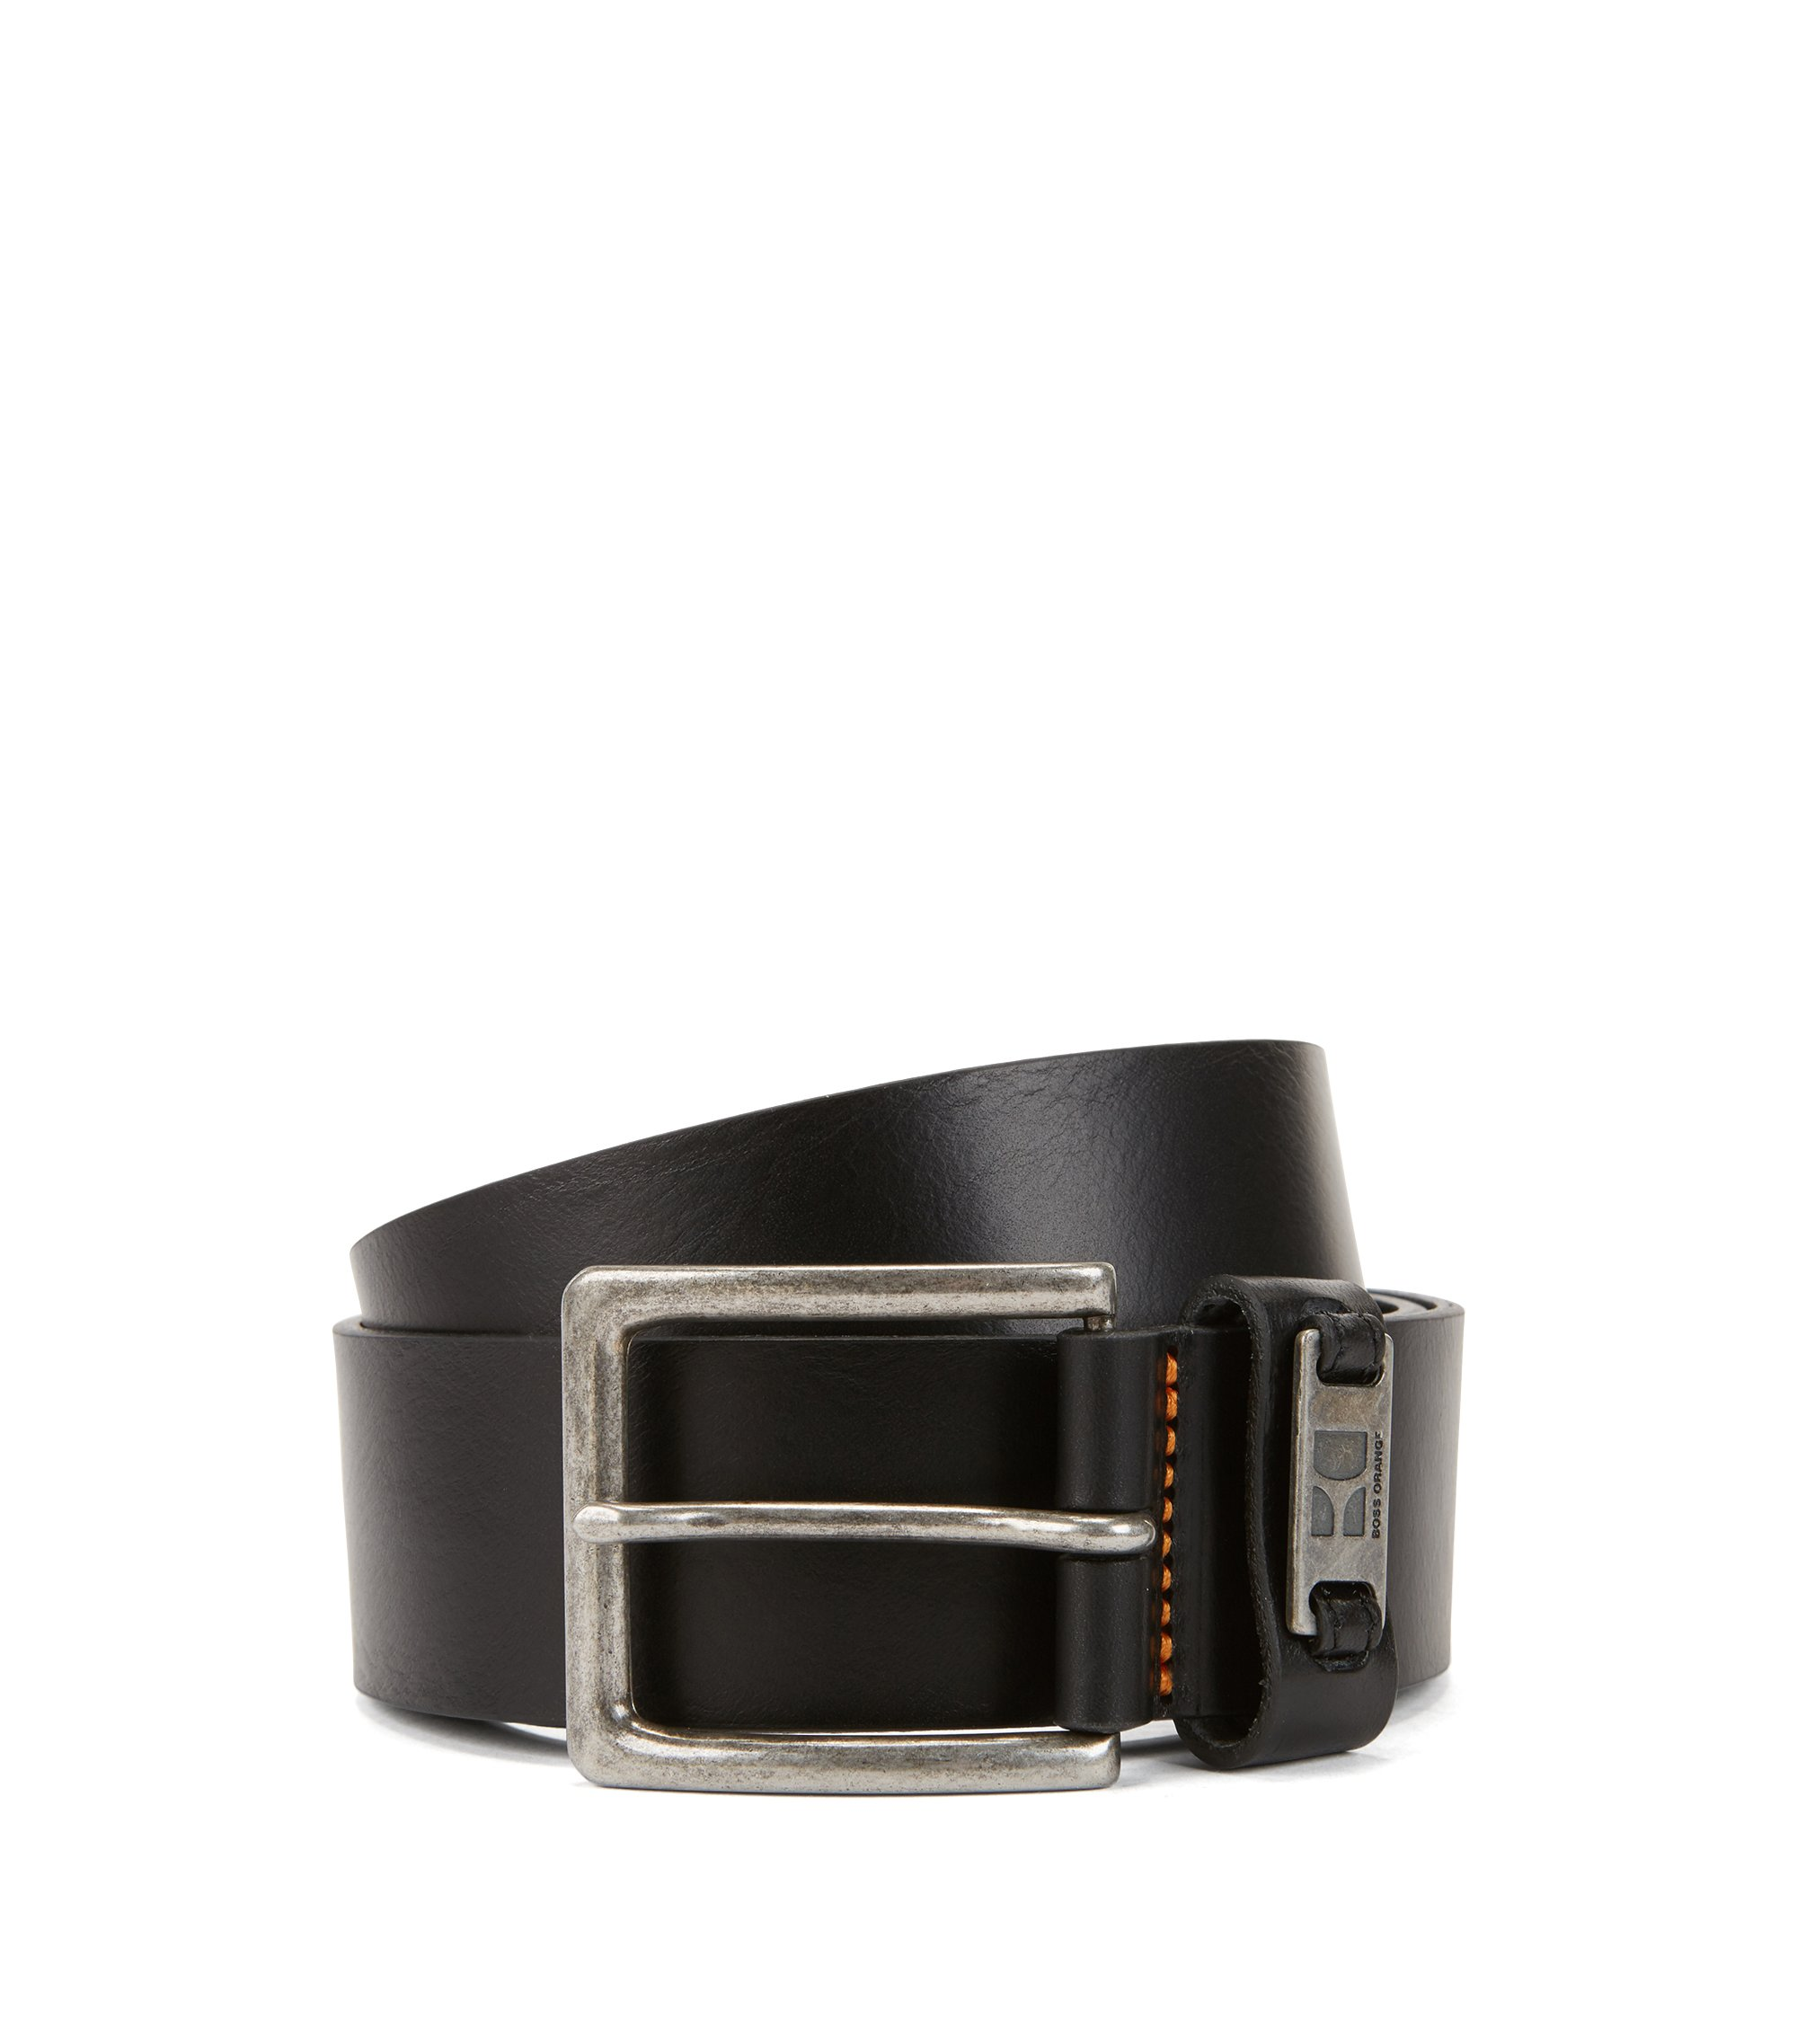 Leather belt with branded metal loop, Black